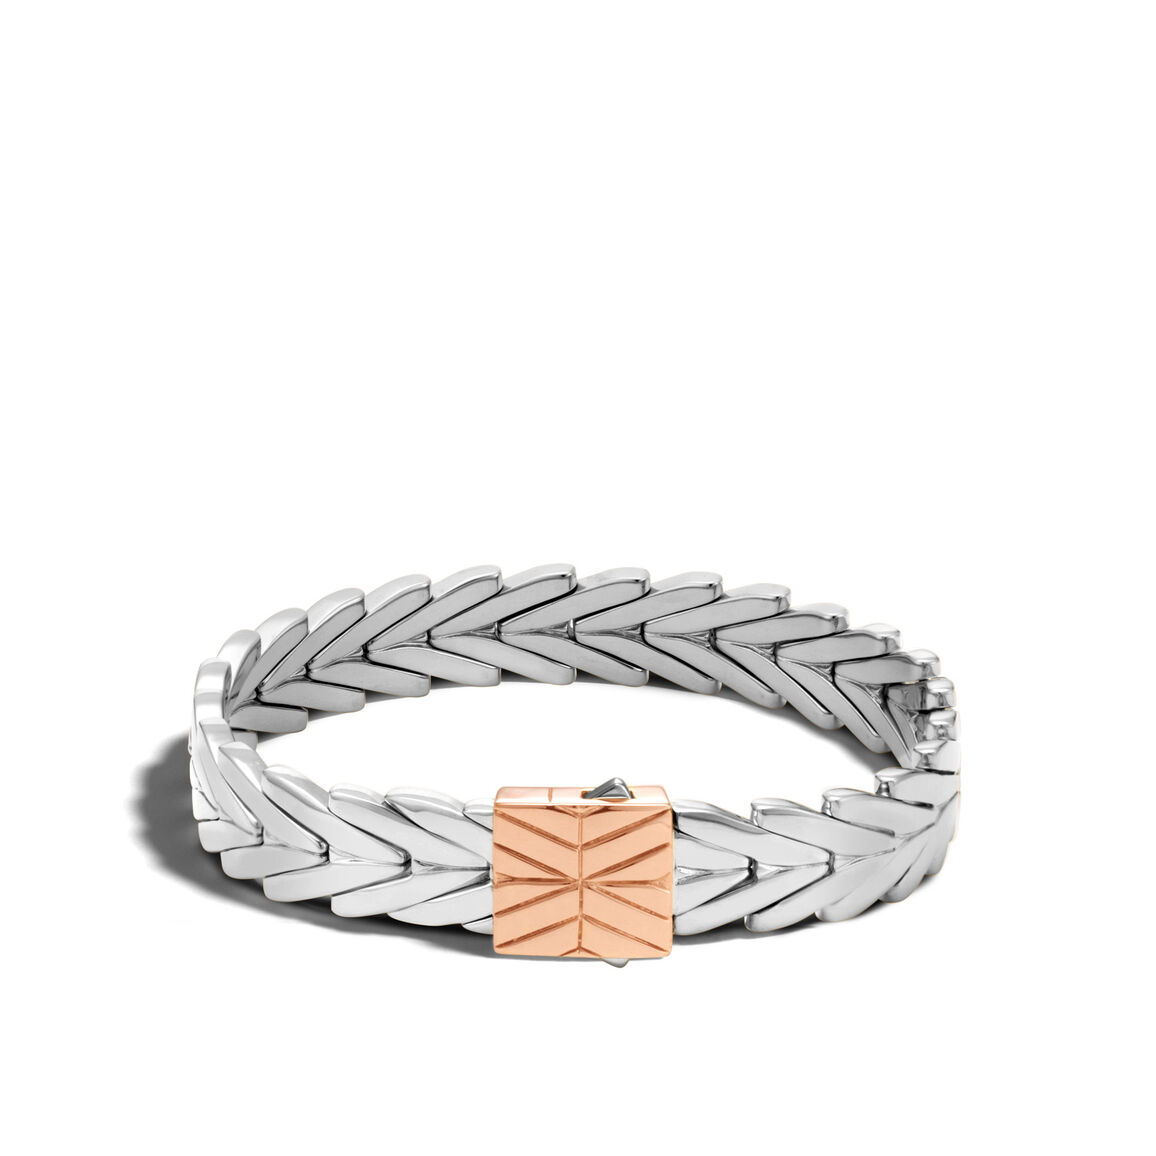 Modern Chain 11MM Bracelet in Silver and 18K Rose Gold